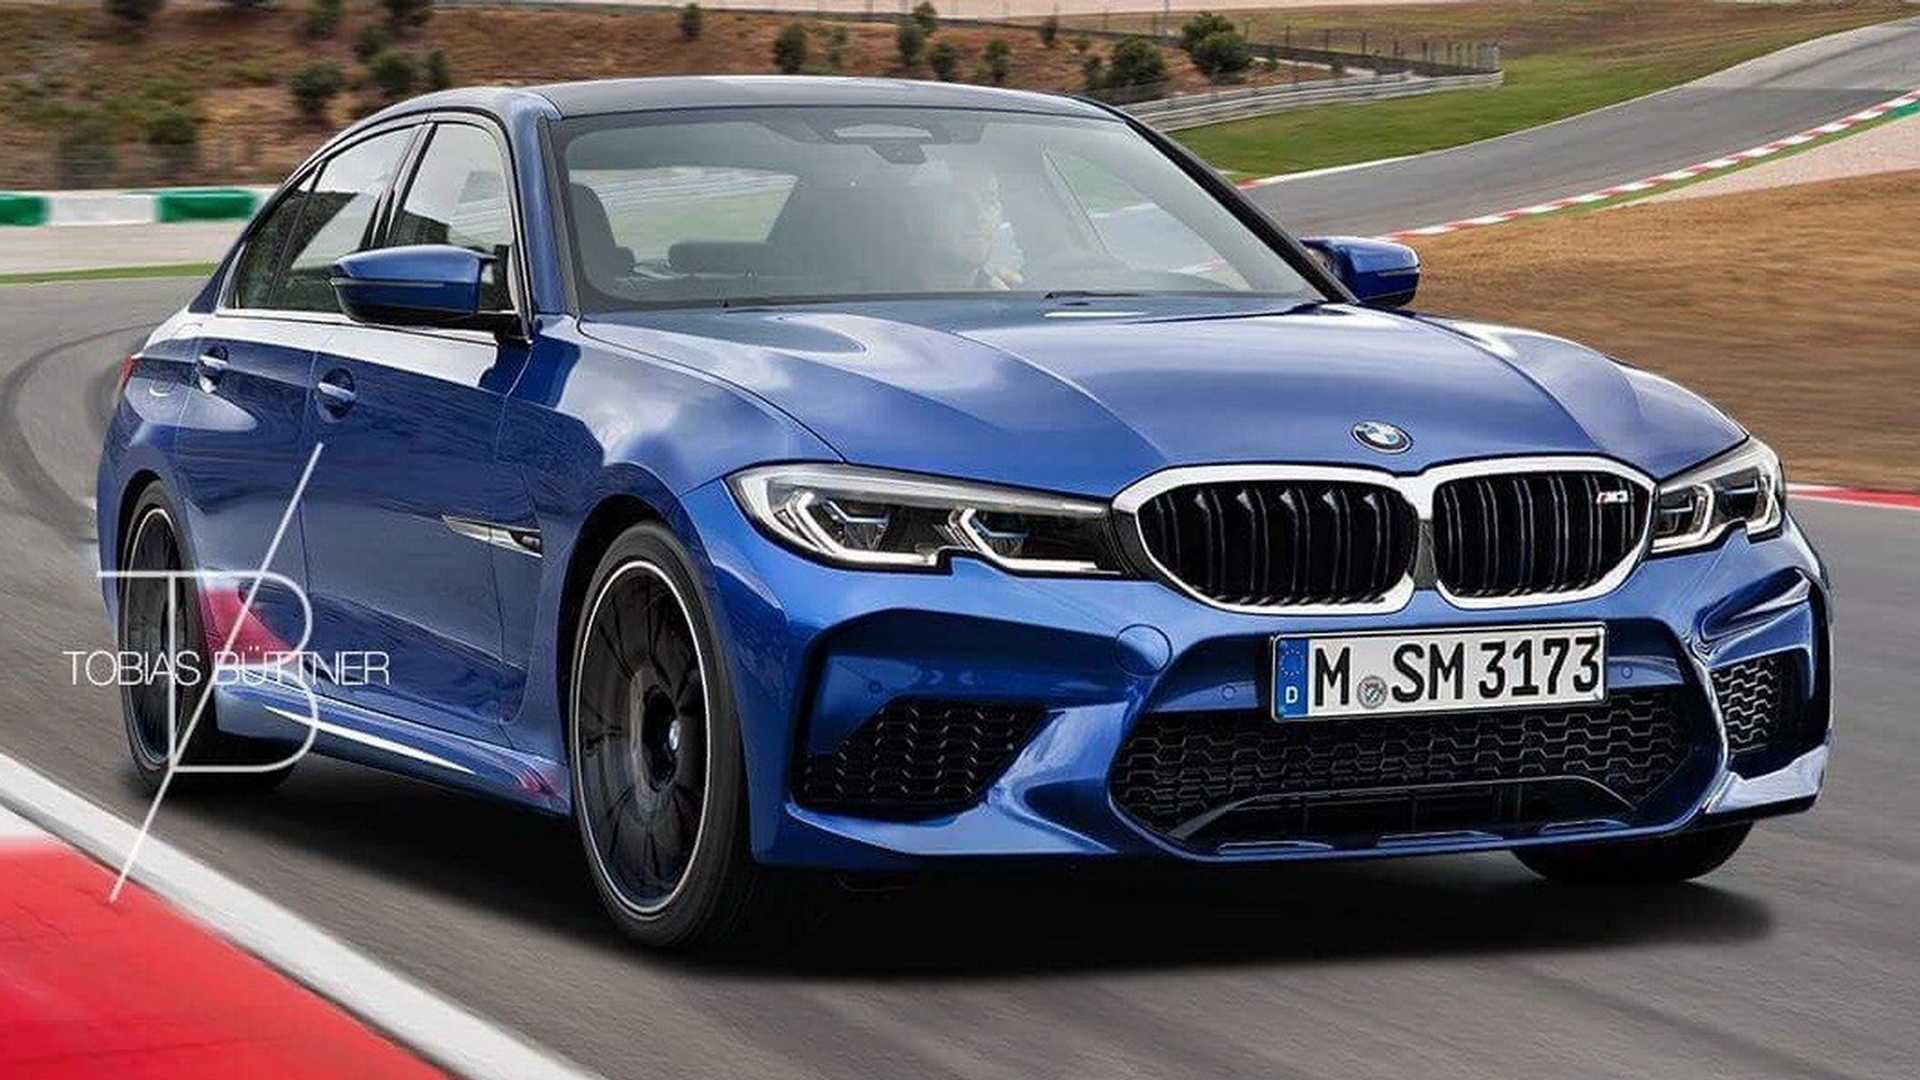 32 All New 2020 Bmw M3 Awd Release Date